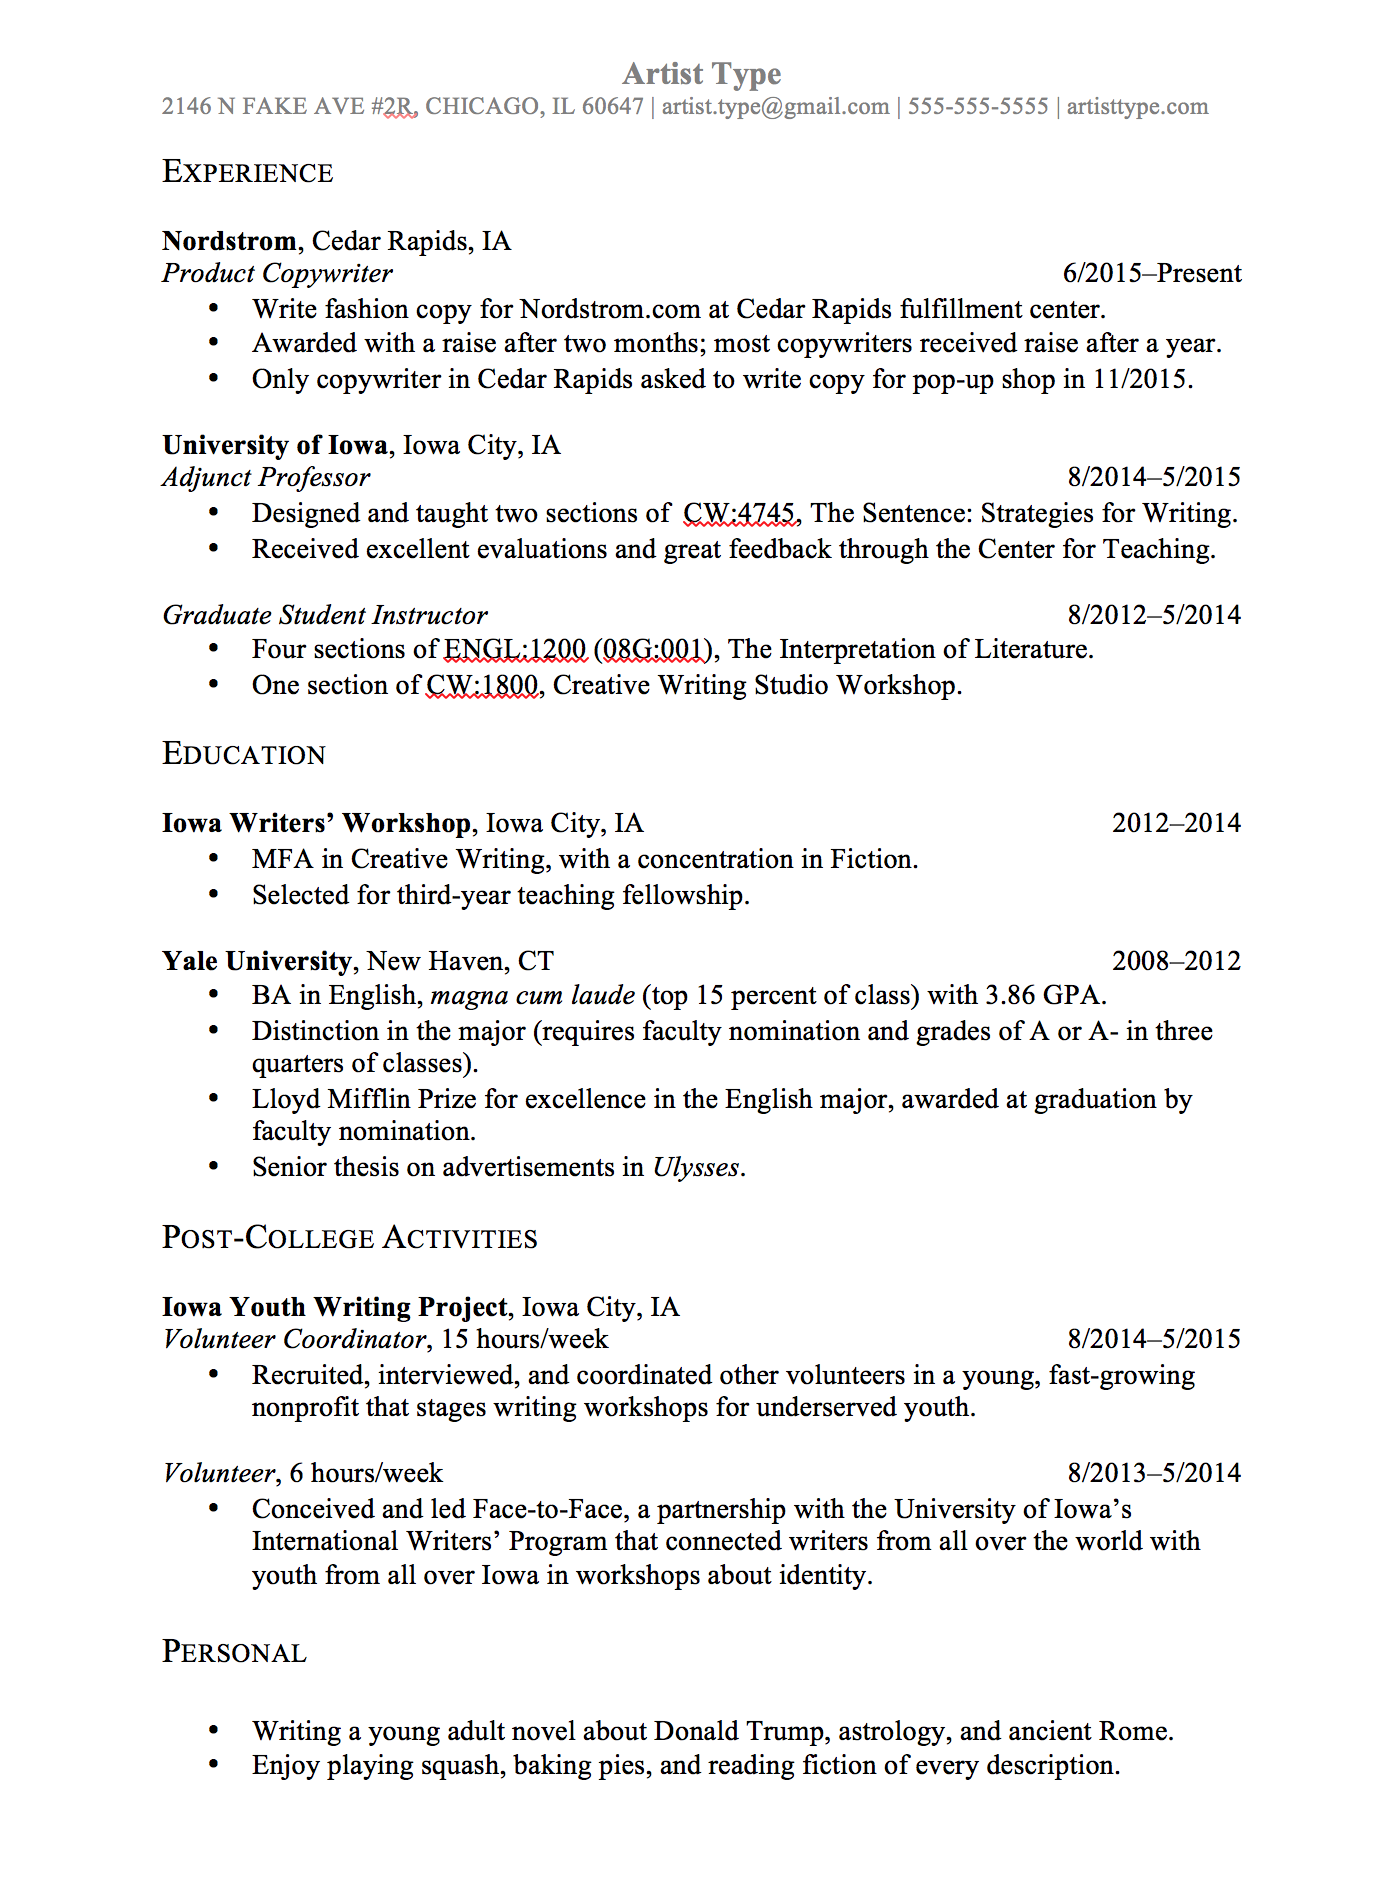 sample rsum and template - Sample Resume Word Document